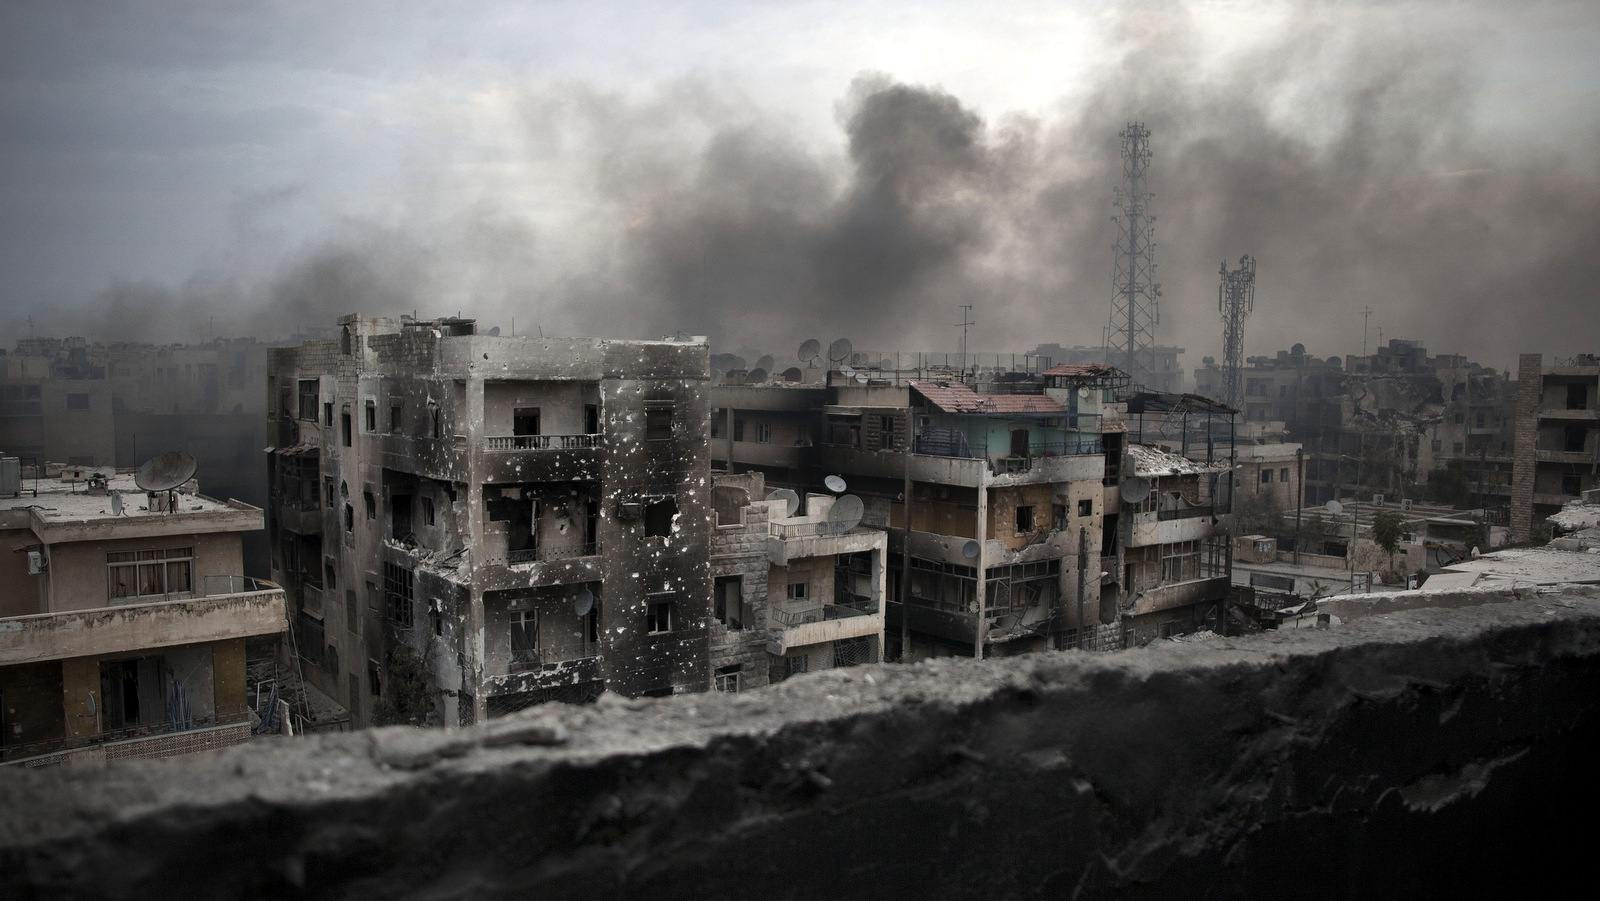 Smoke rises over a battle-scarred Saif Al Dawla district in Aleppo, Syria, on October 2, 2012